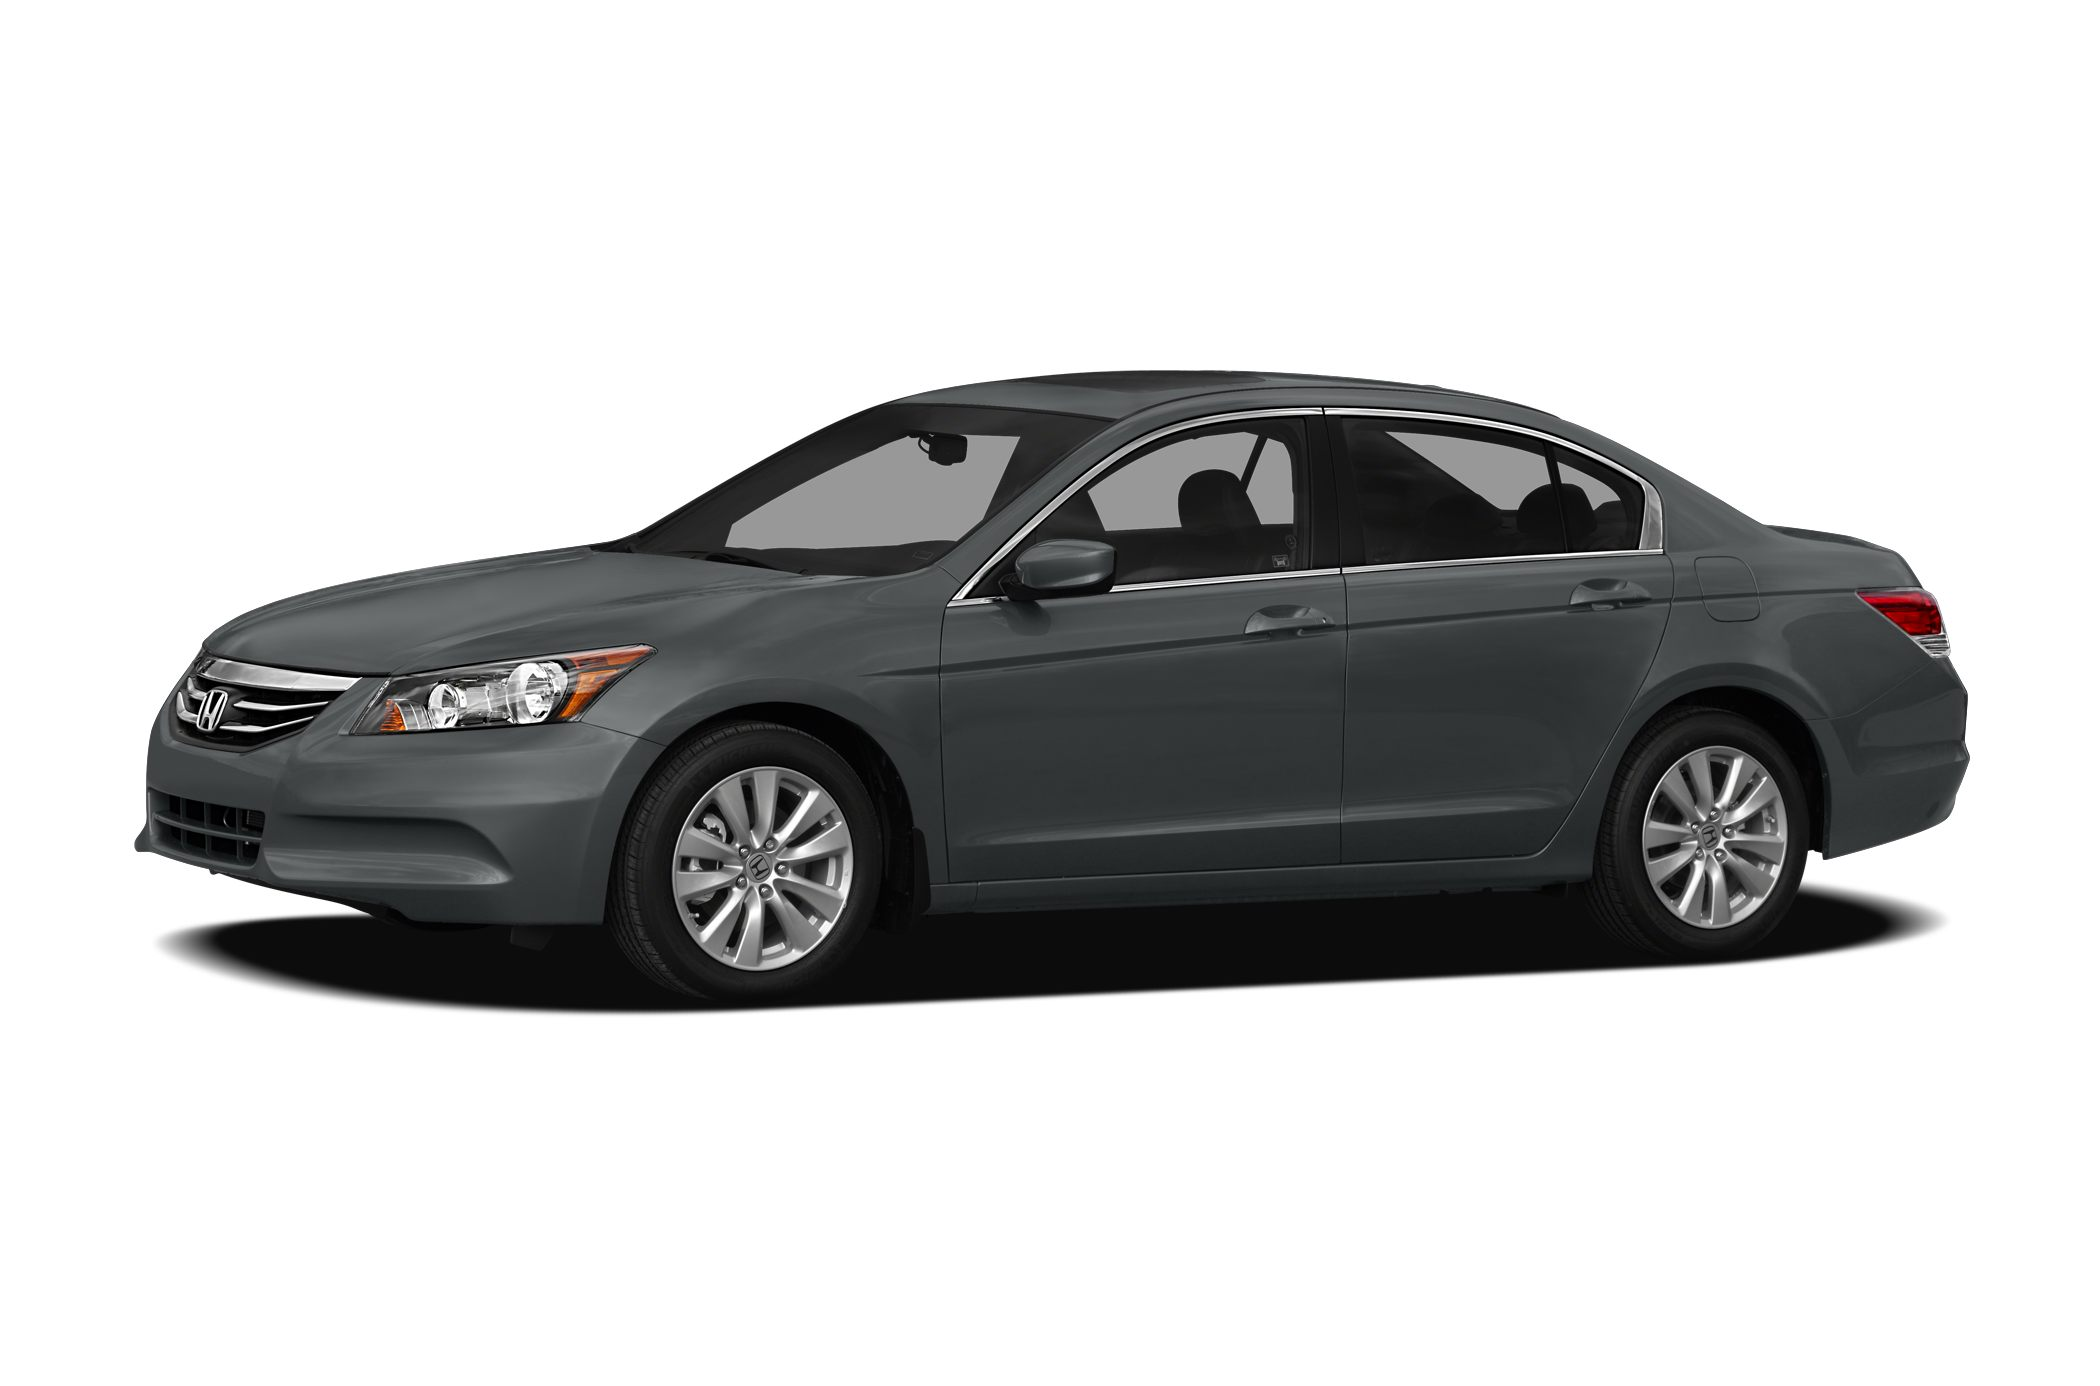 2012 Honda Accord EX-L Sedan for sale in Memphis for $18,995 with 21,462 miles.